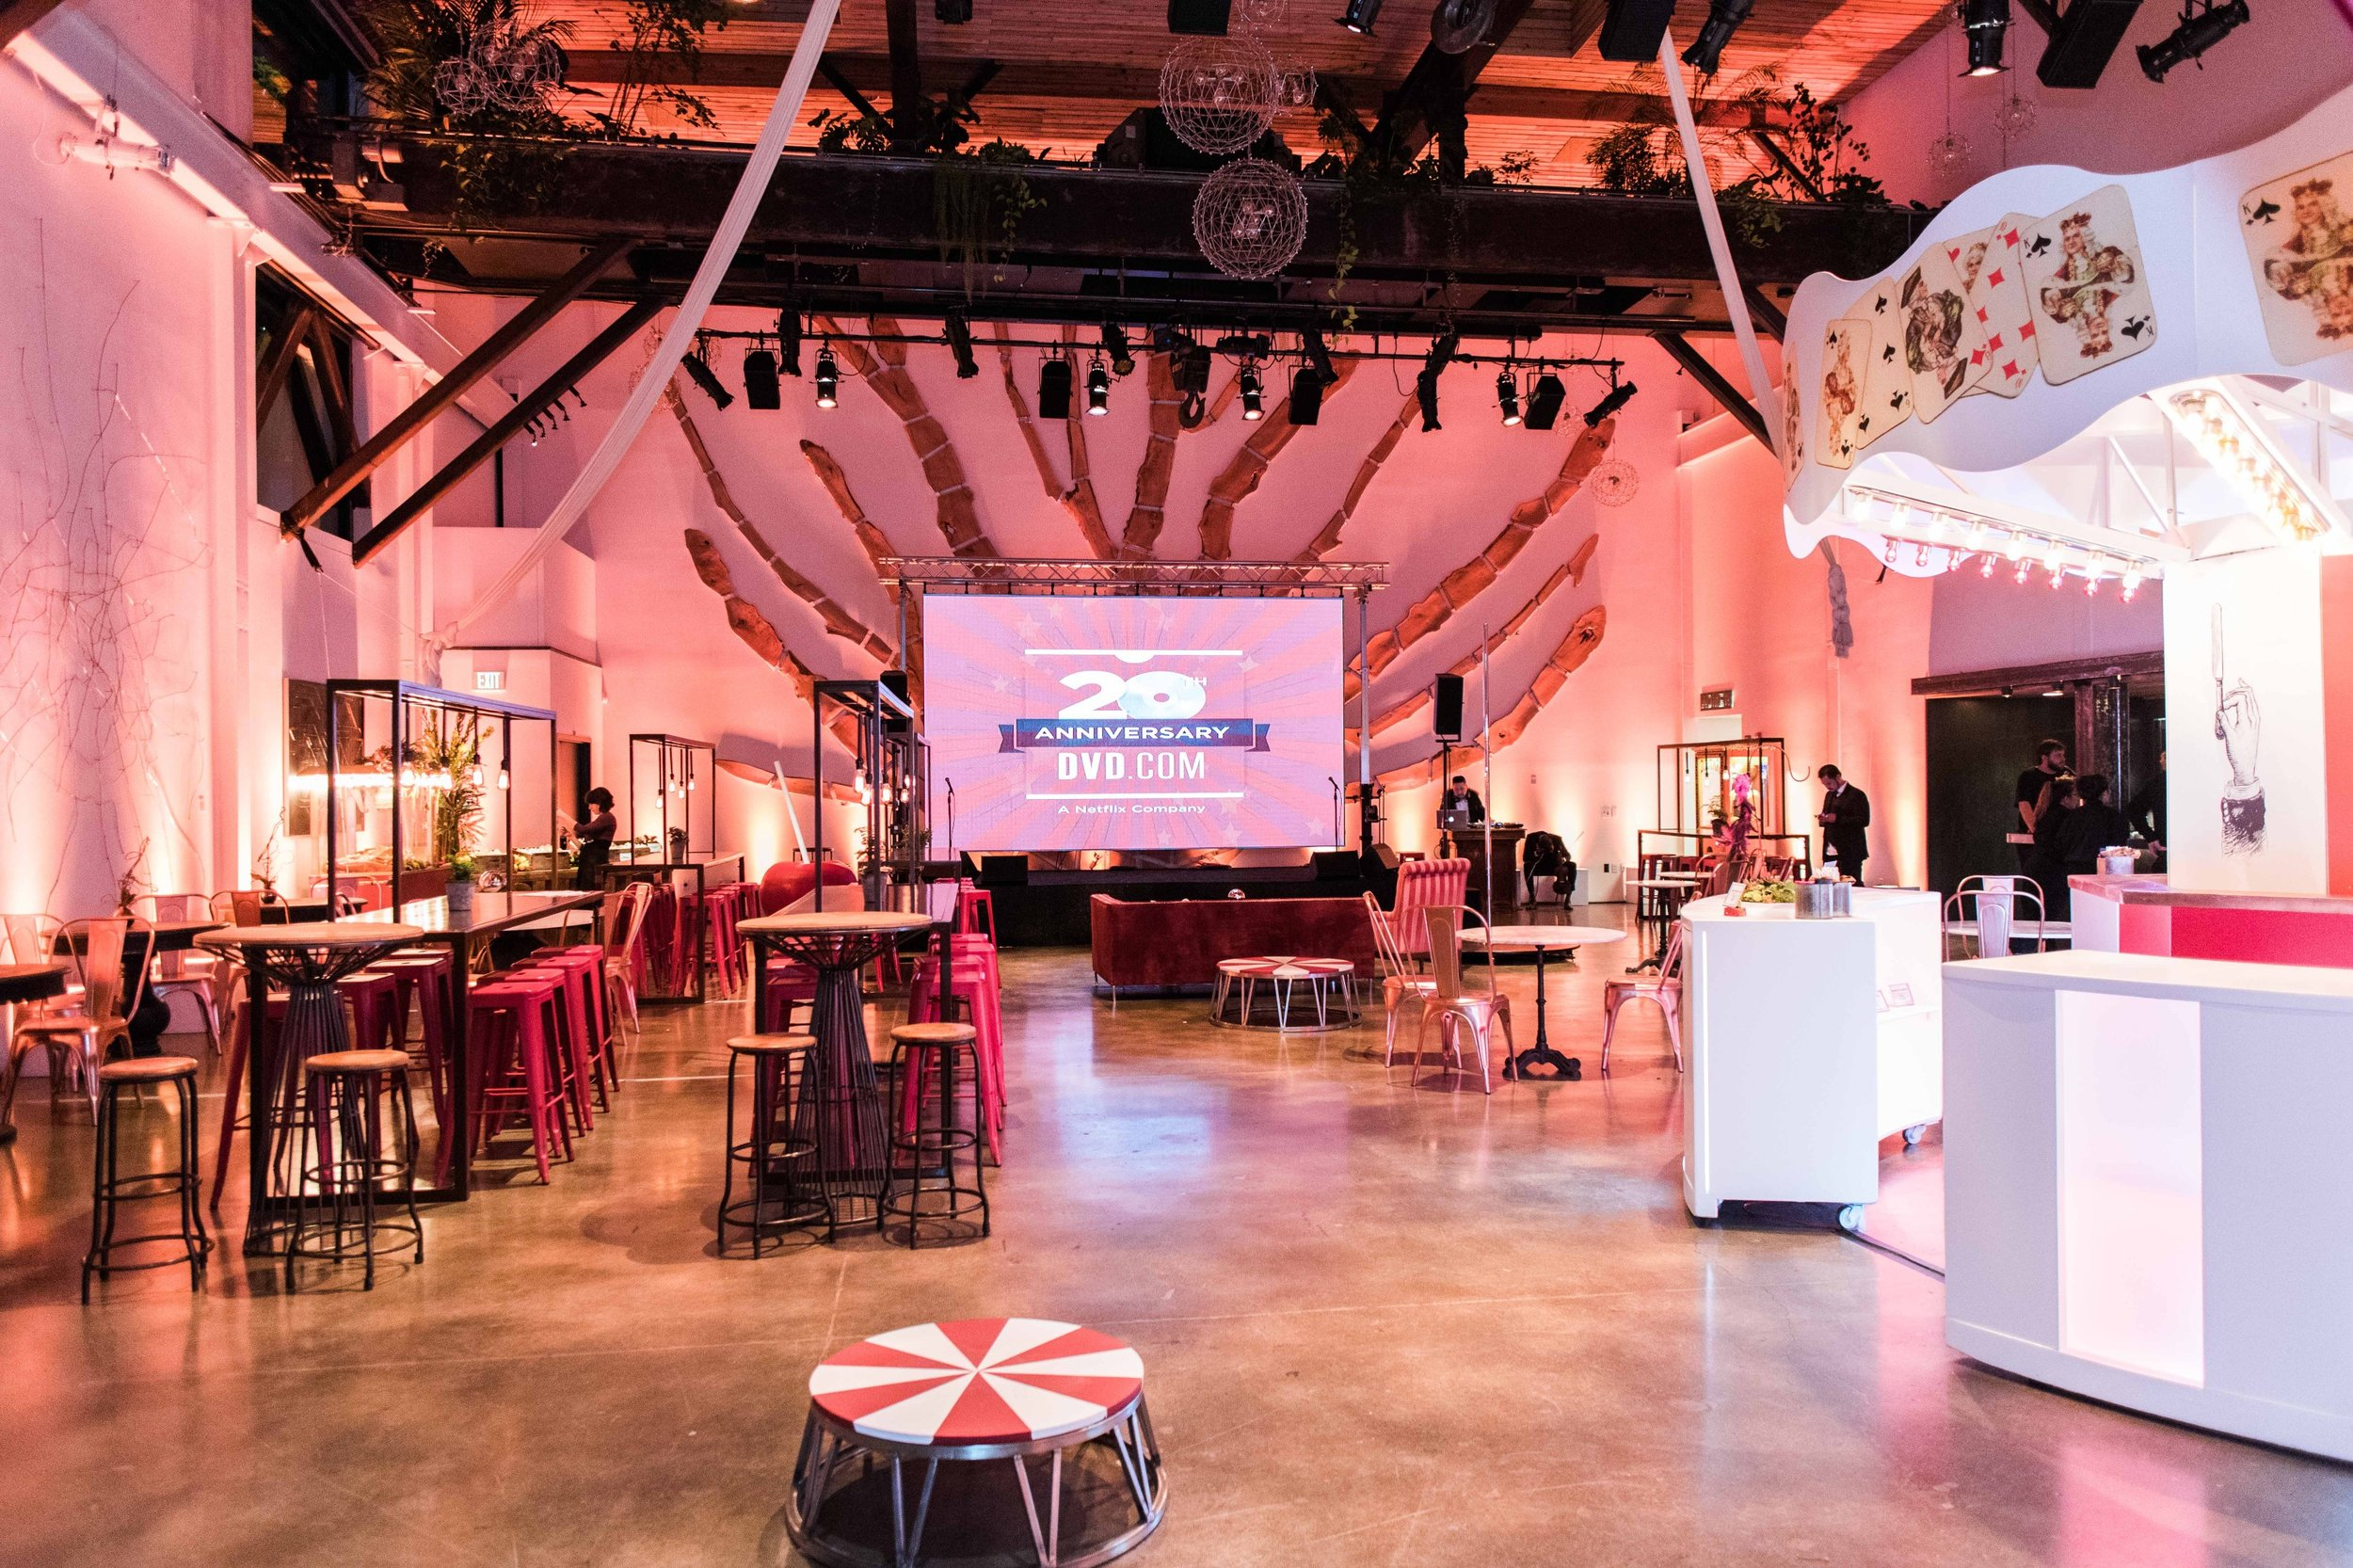 The-Pearl-SF-San-Francisco-Event-Photos-Corporate-Venue-6.jpg